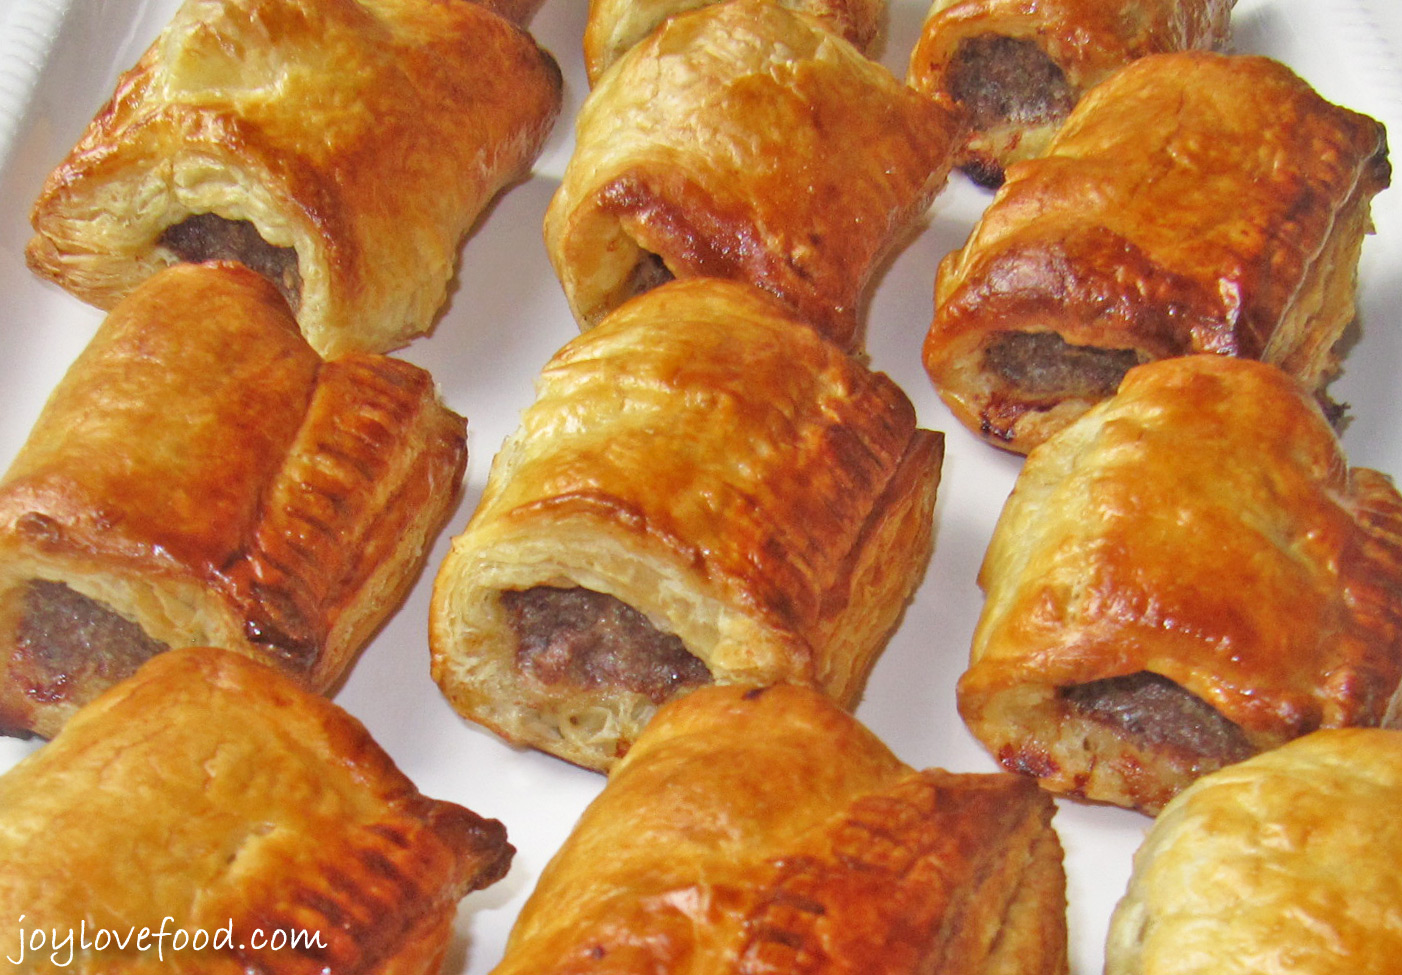 Recipes for lean baking. Fast pastry in a hurry 1